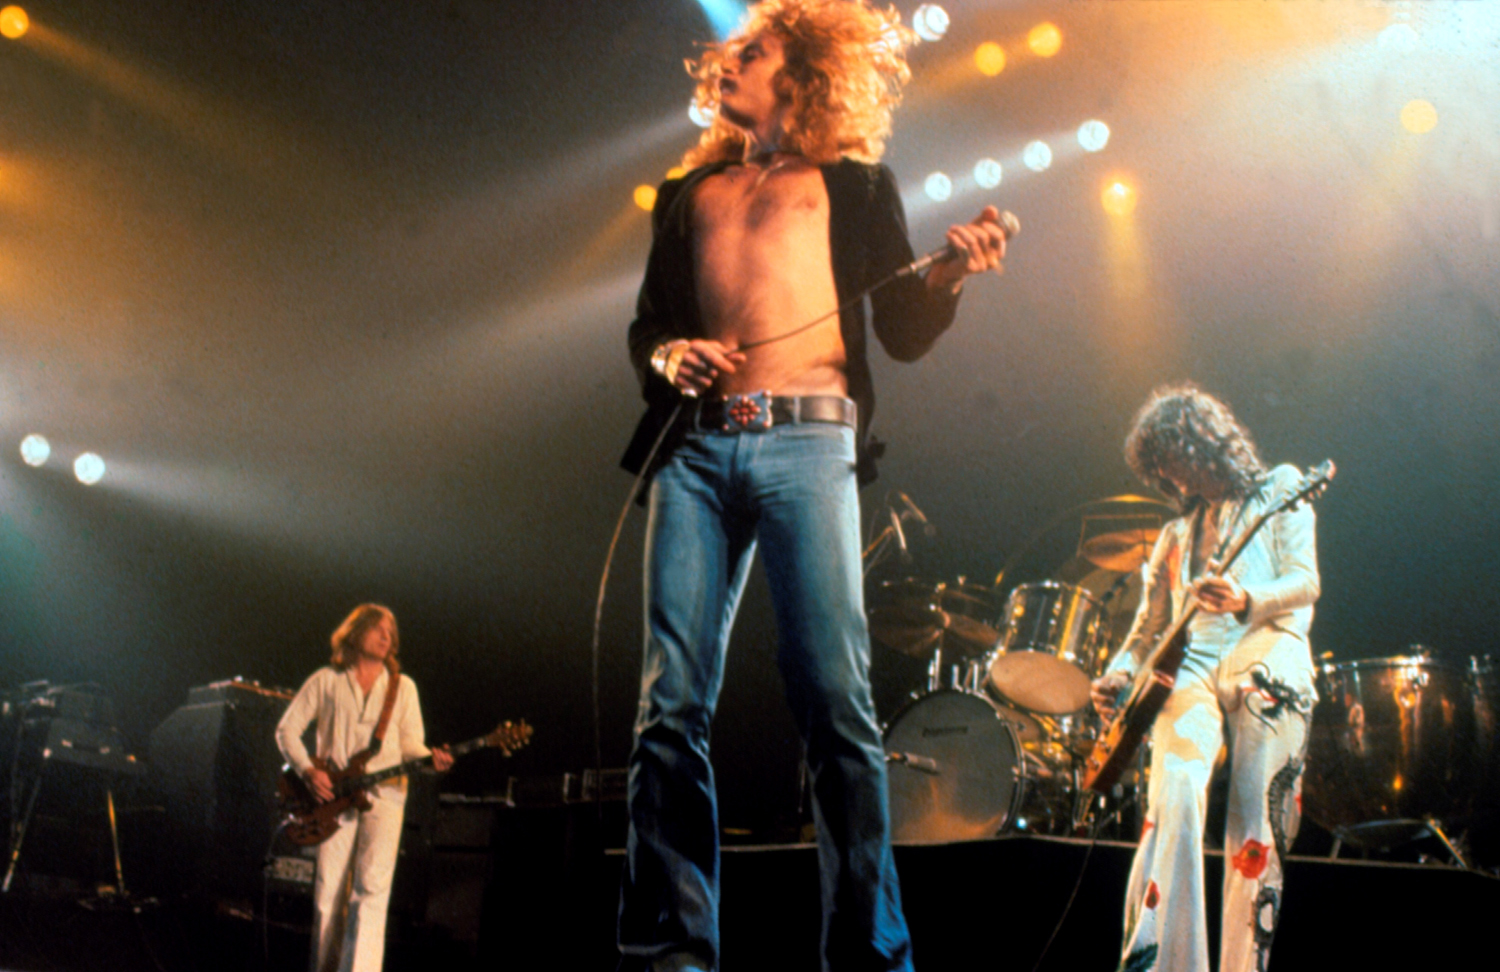 Bassist John Paul Jones, singer Robert Plant and guitarist Jimmy Page of British rock band Led Zeppelin performing on stage at Madison Square Garden in New York City in June 1977